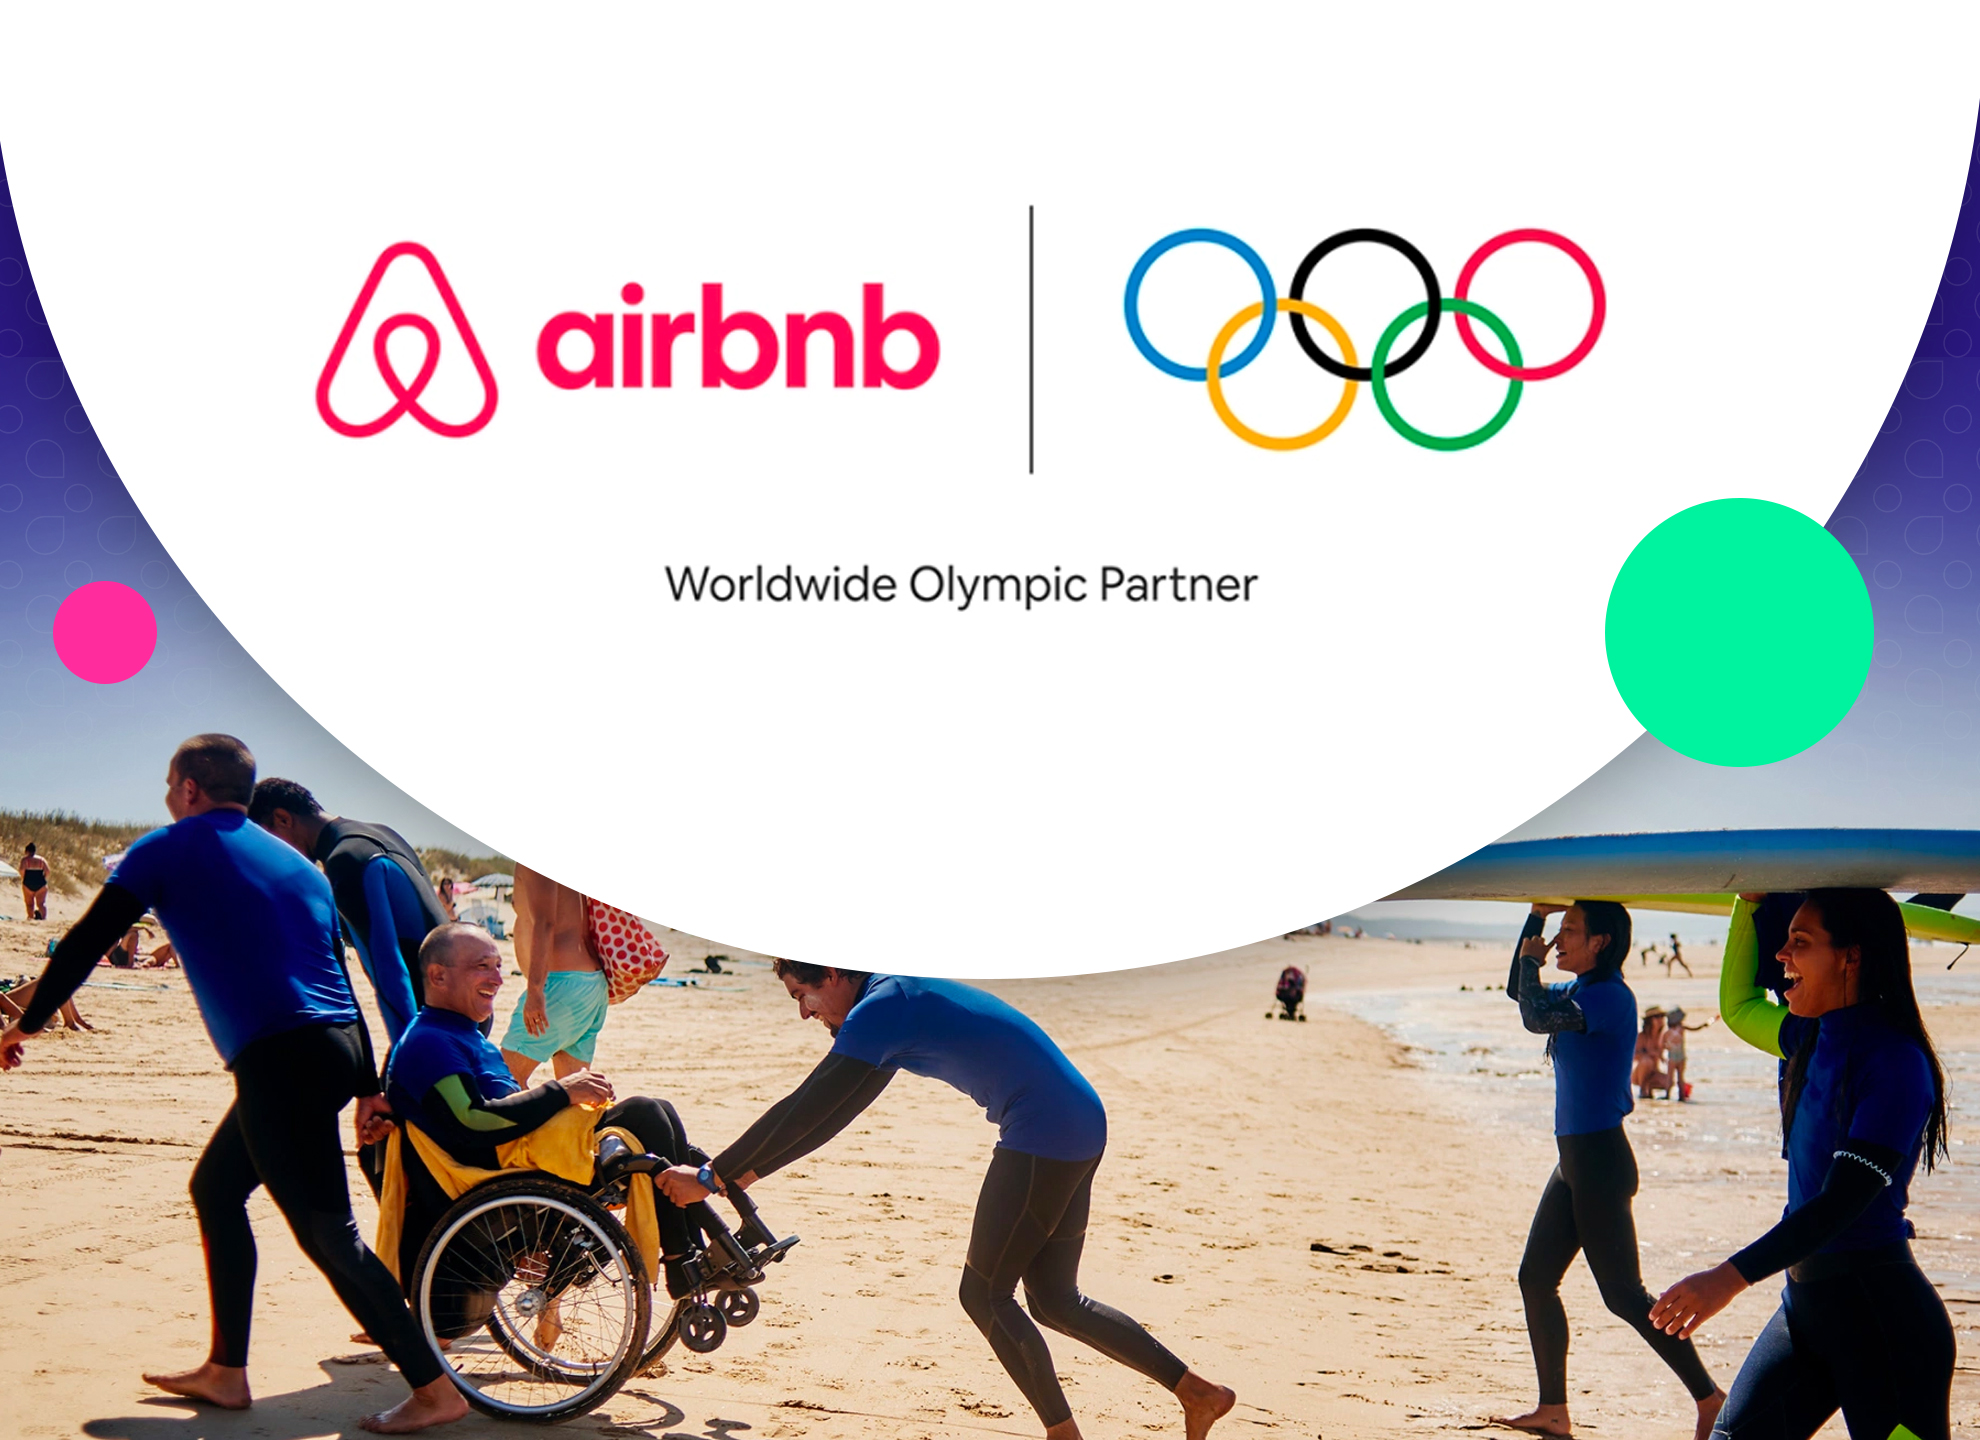 Partnership advertisement between brands Airbnb and the Olympics